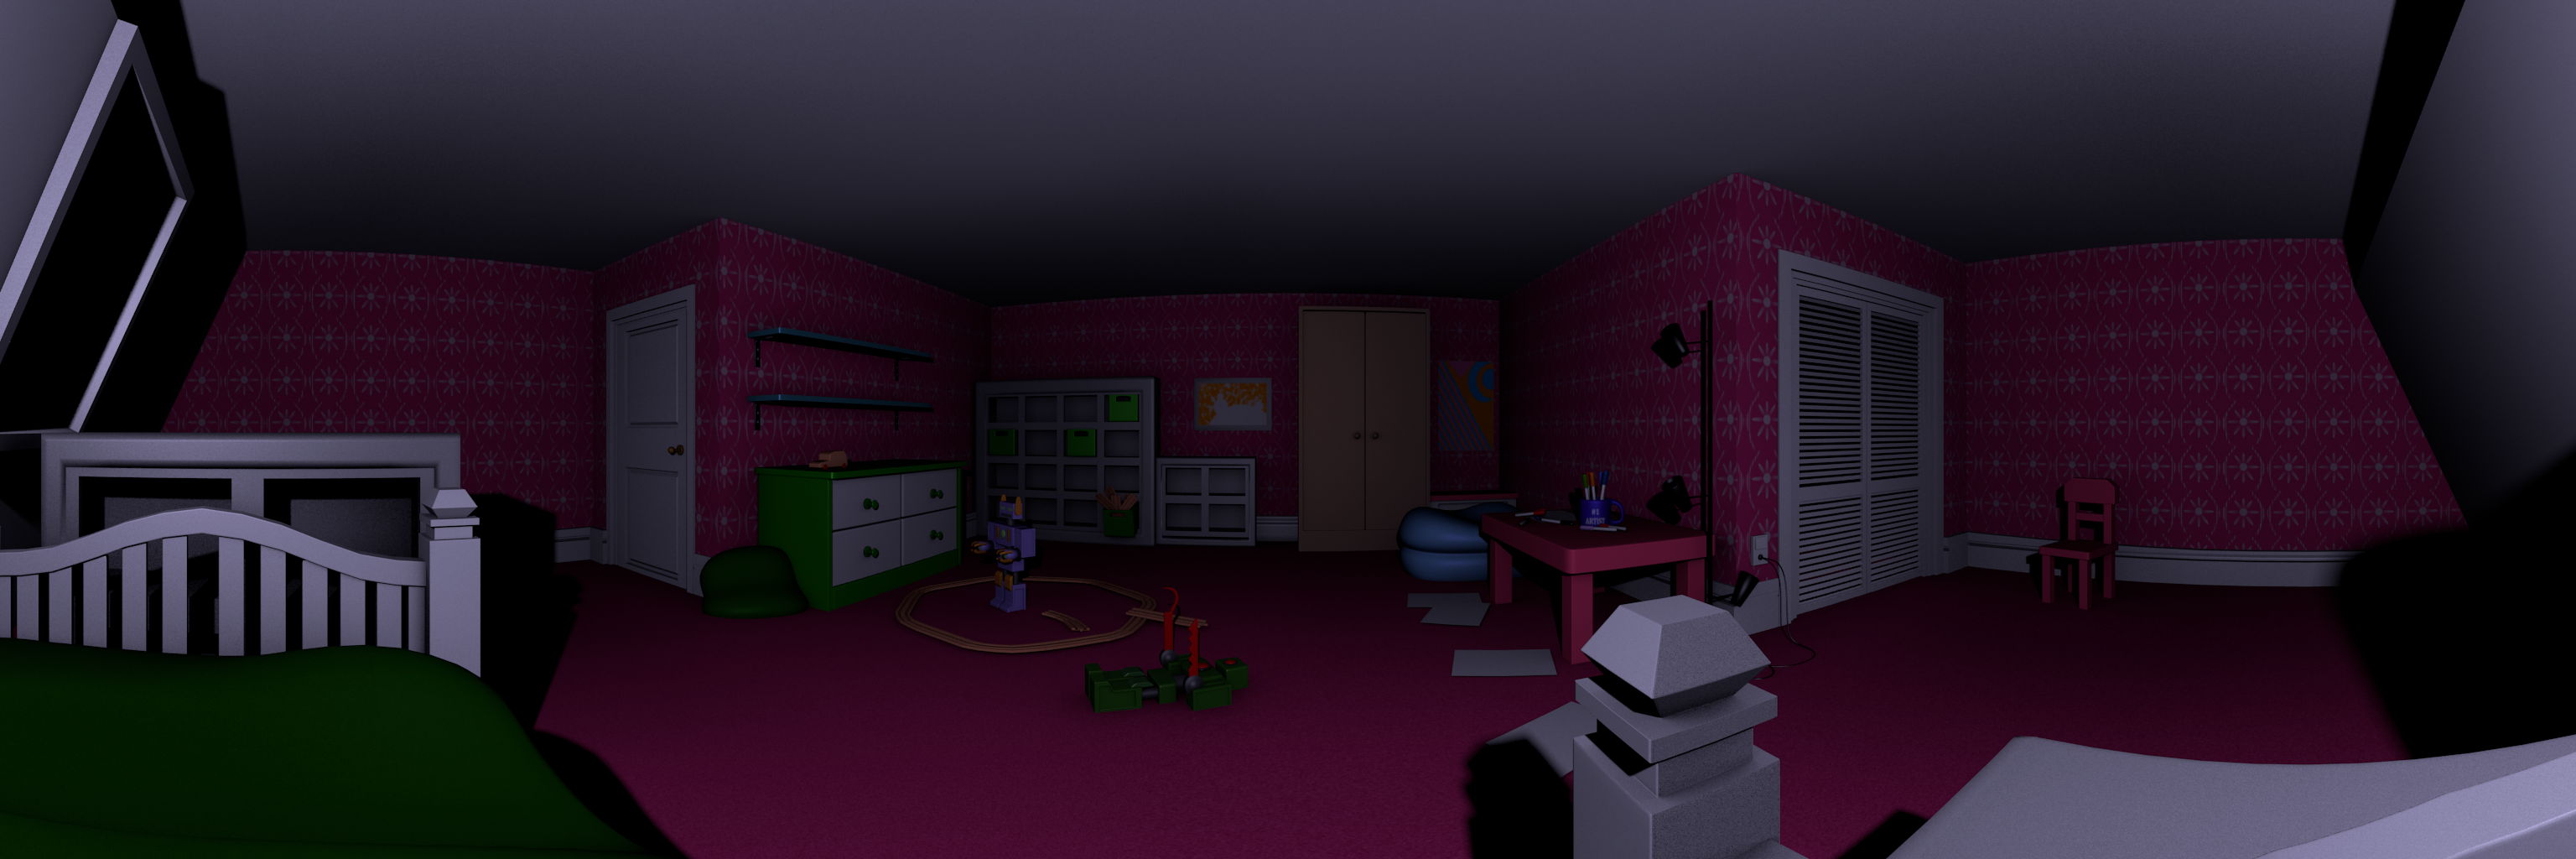 Five Nights At Candy S 3 Map W I P Better Render By